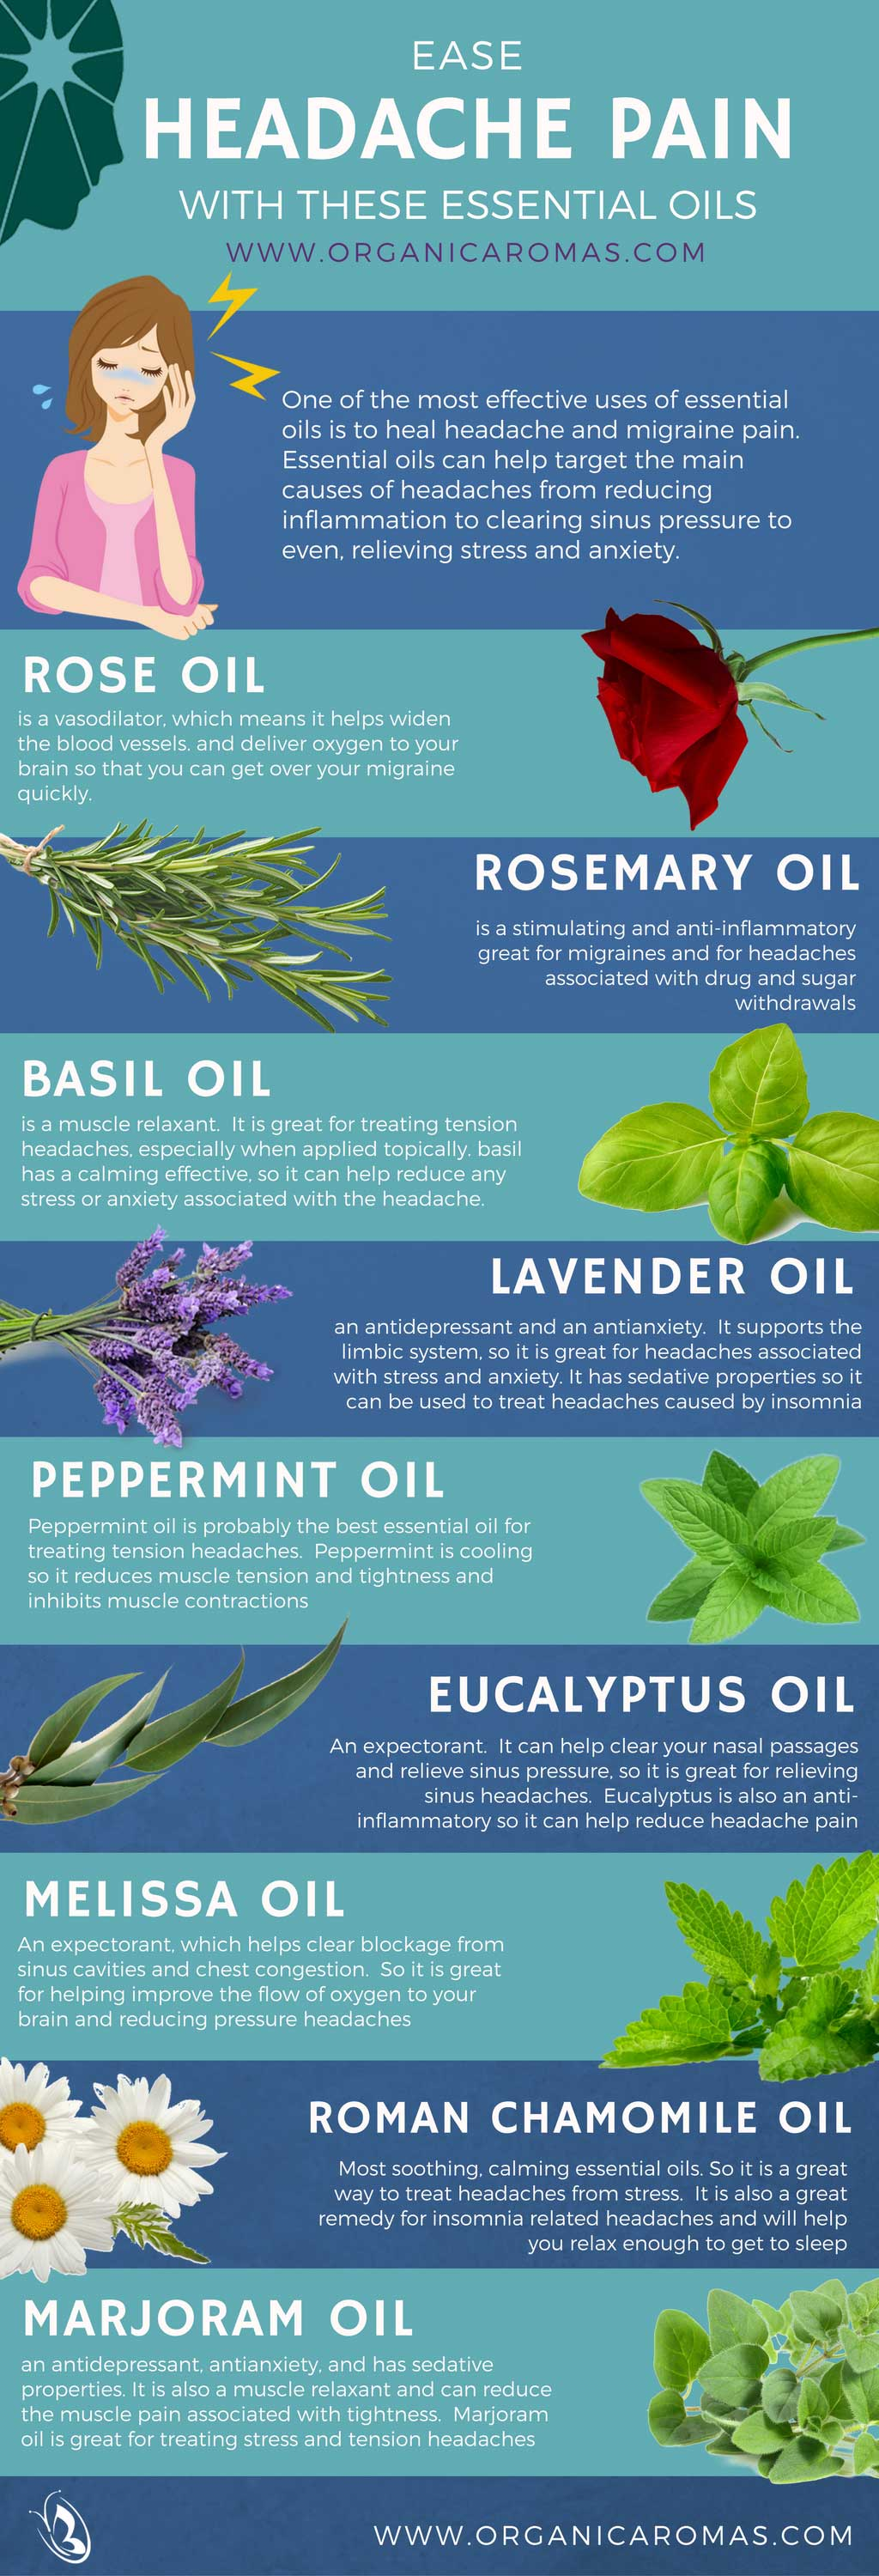 Ease Headaches with Essential Oils by Organic Aromas